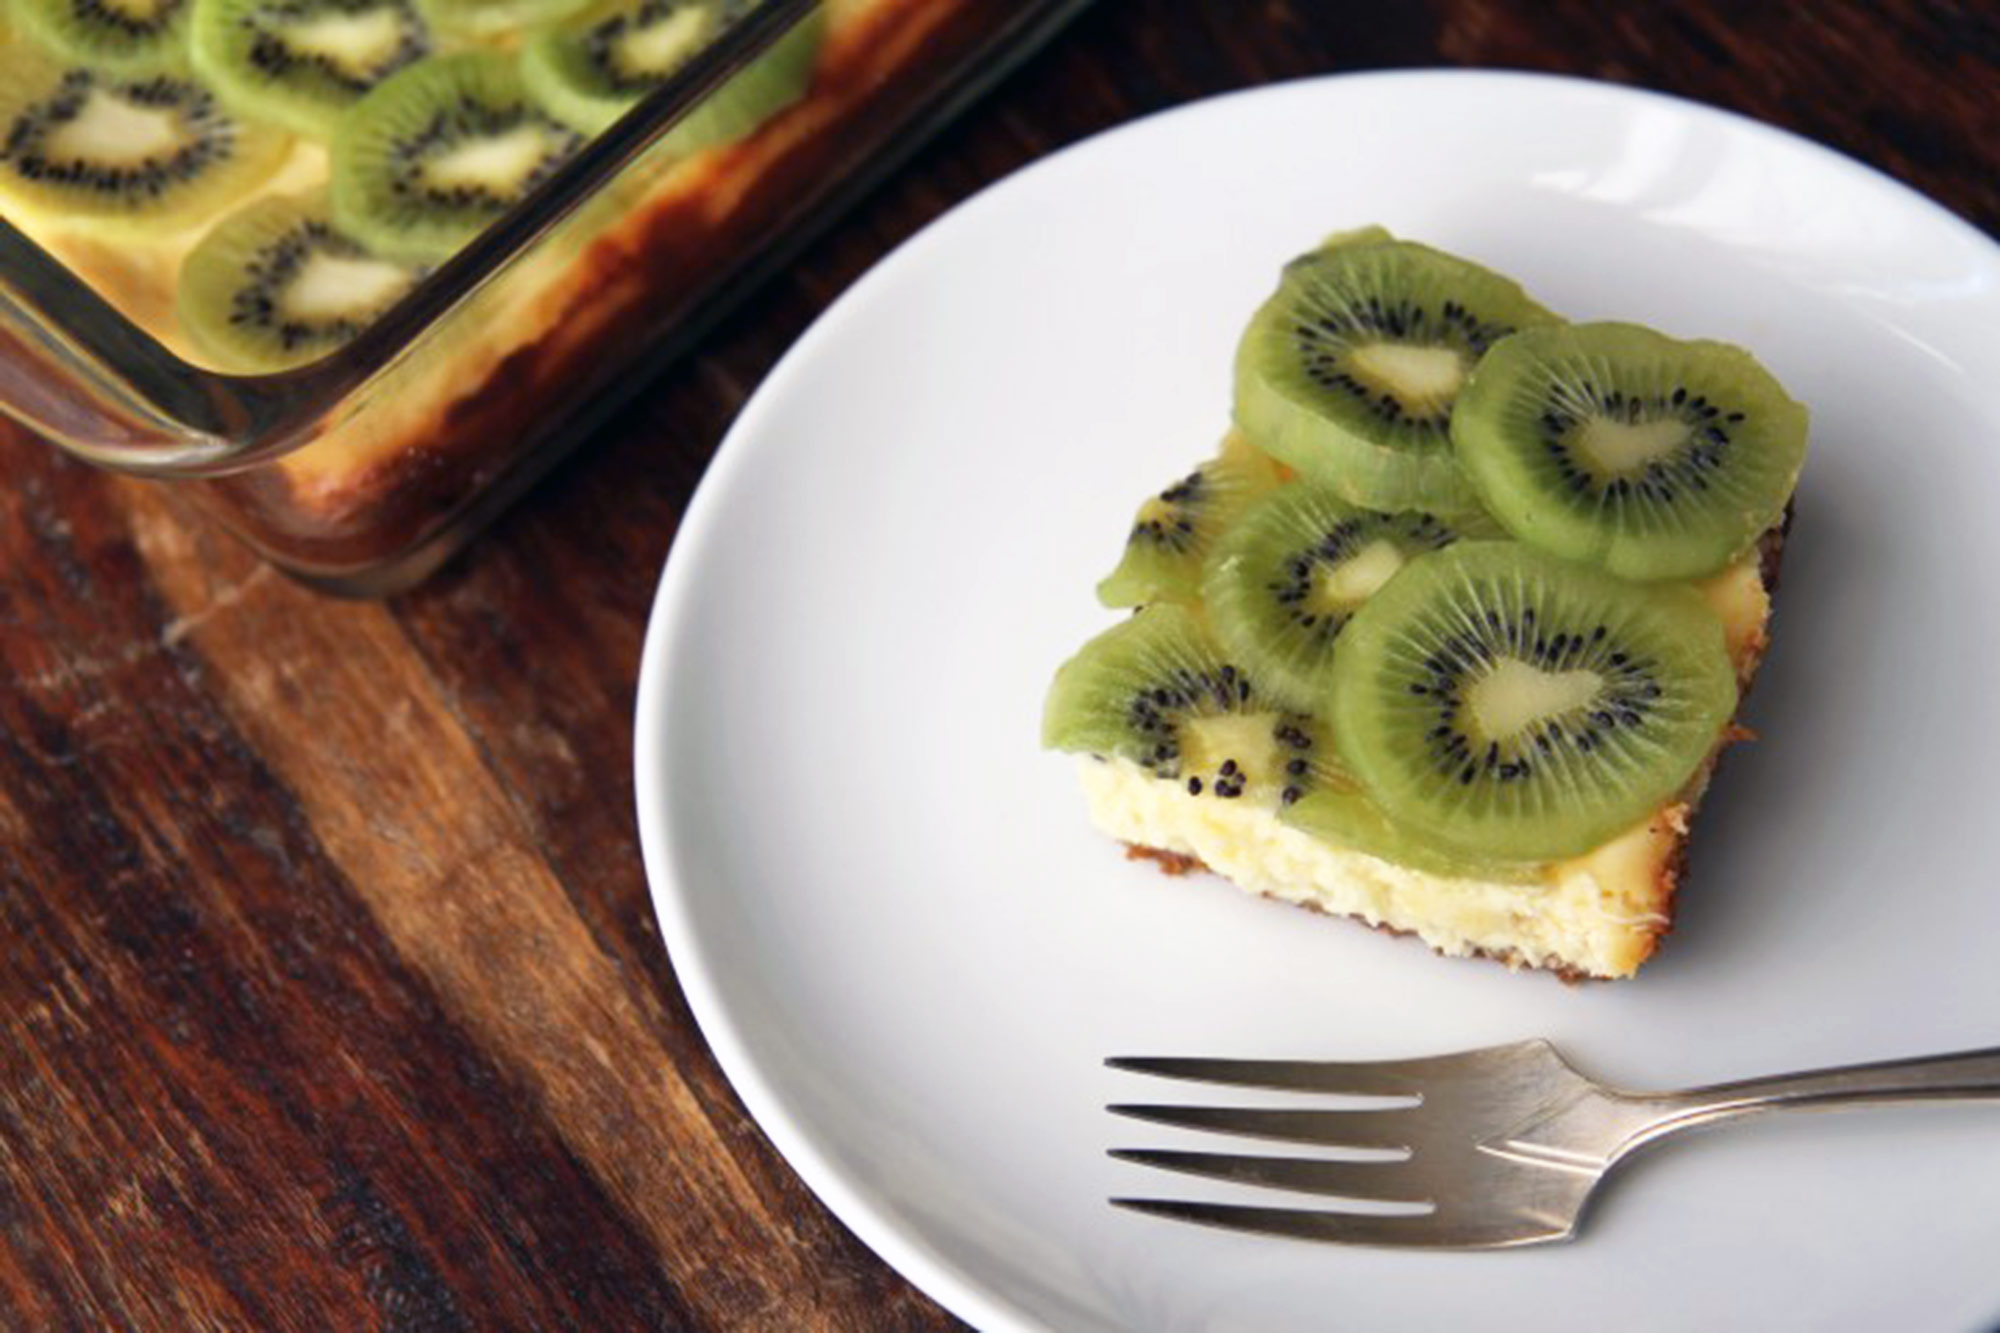 Lemon and Kiwi Cheesecake Bars